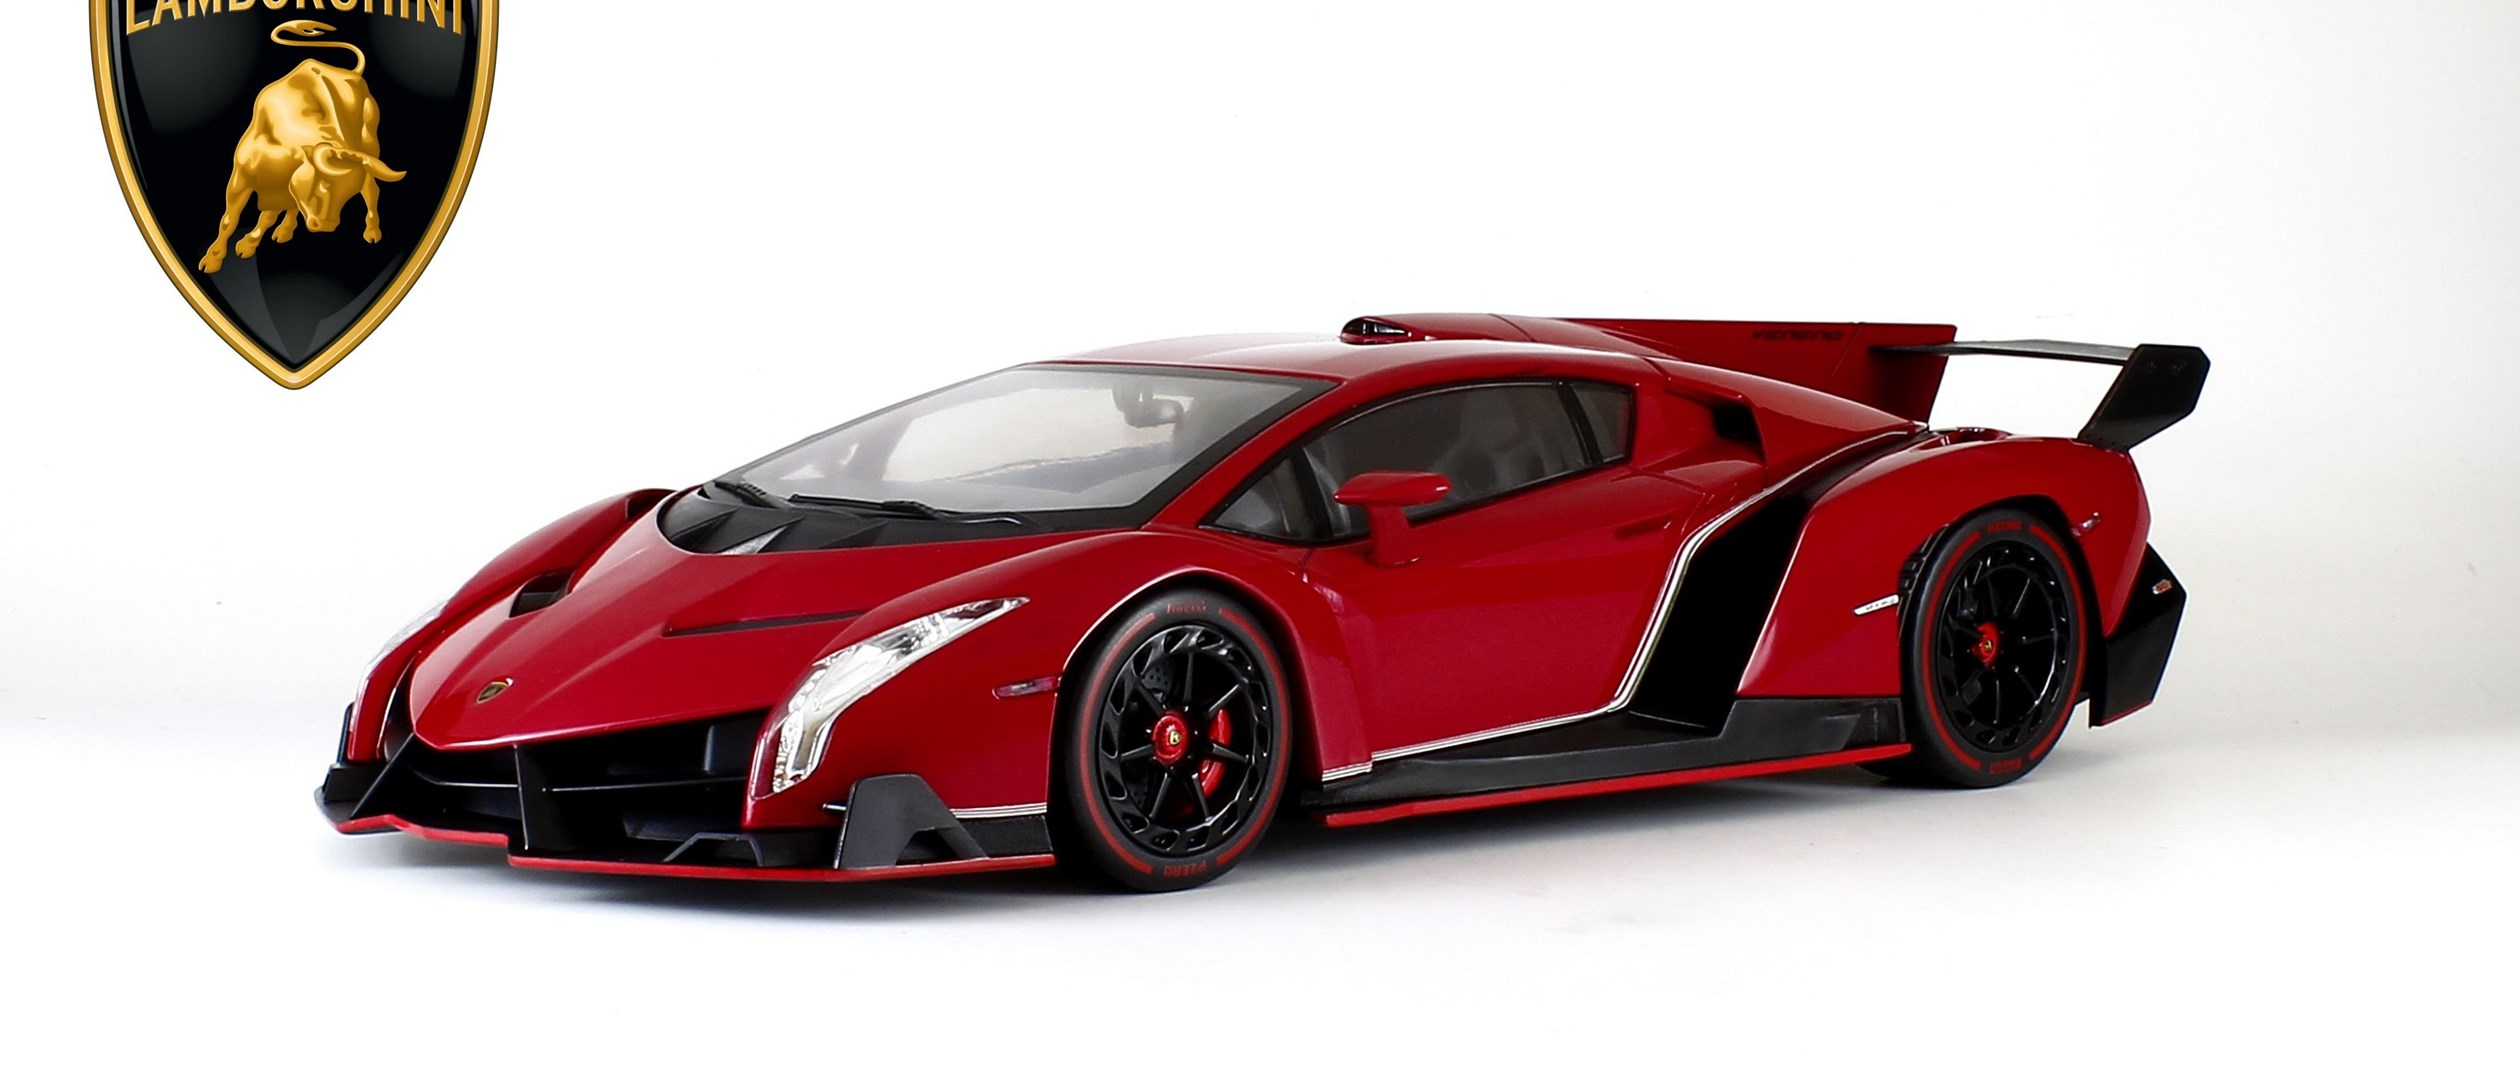 Lamborghini Veneno Wallpapers Desktop Background